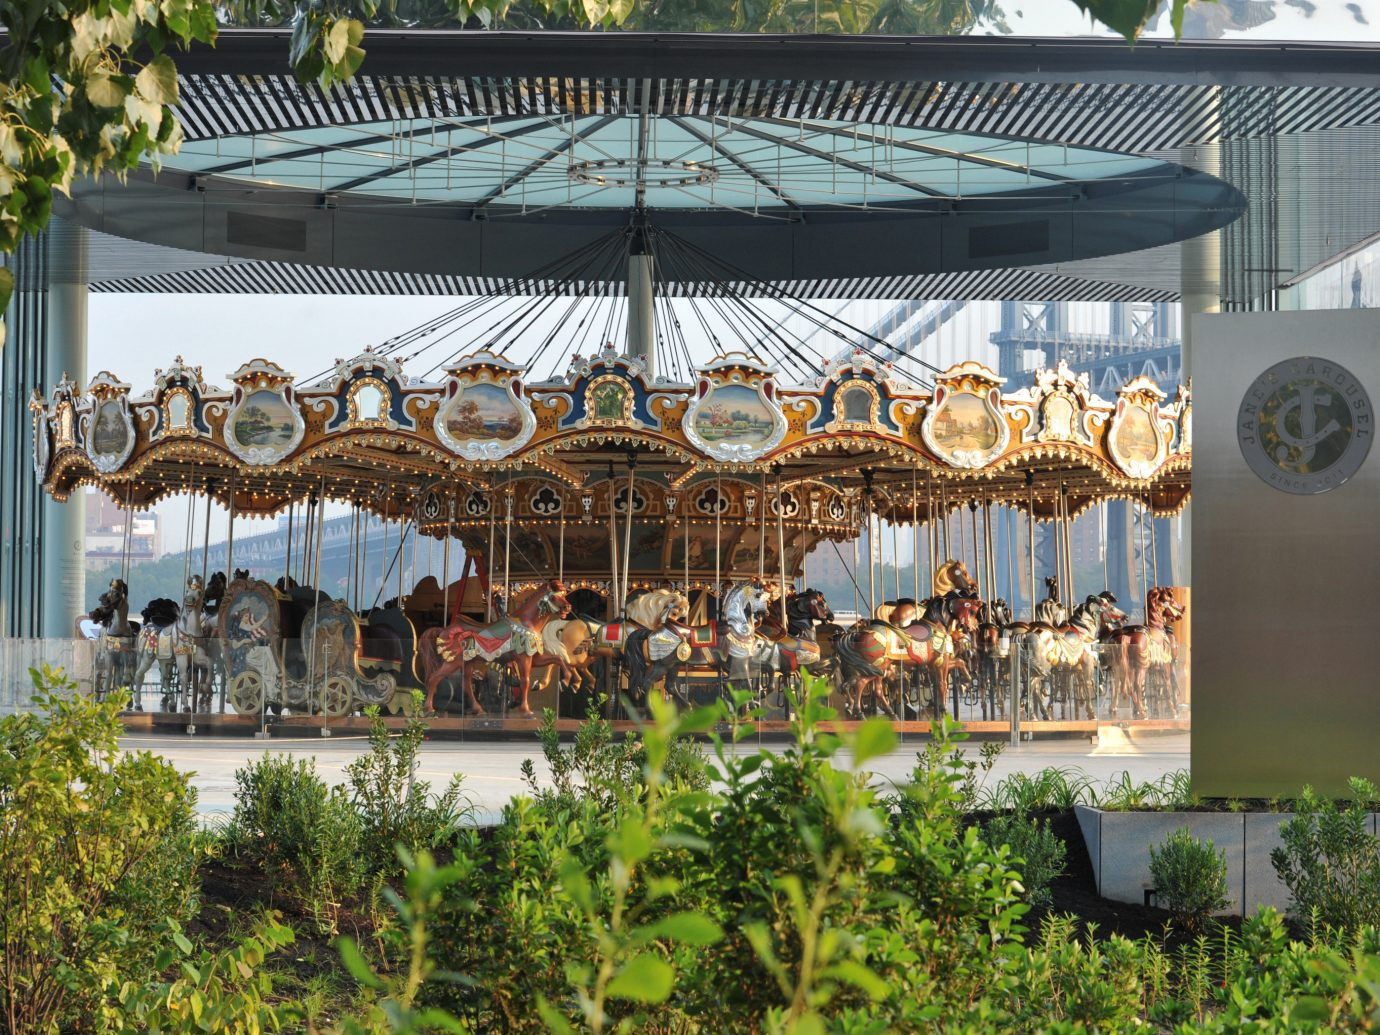 Trip Ideas tree outdoor outdoor structure recreation park amusement park gazebo amusement ride tourist attraction ride